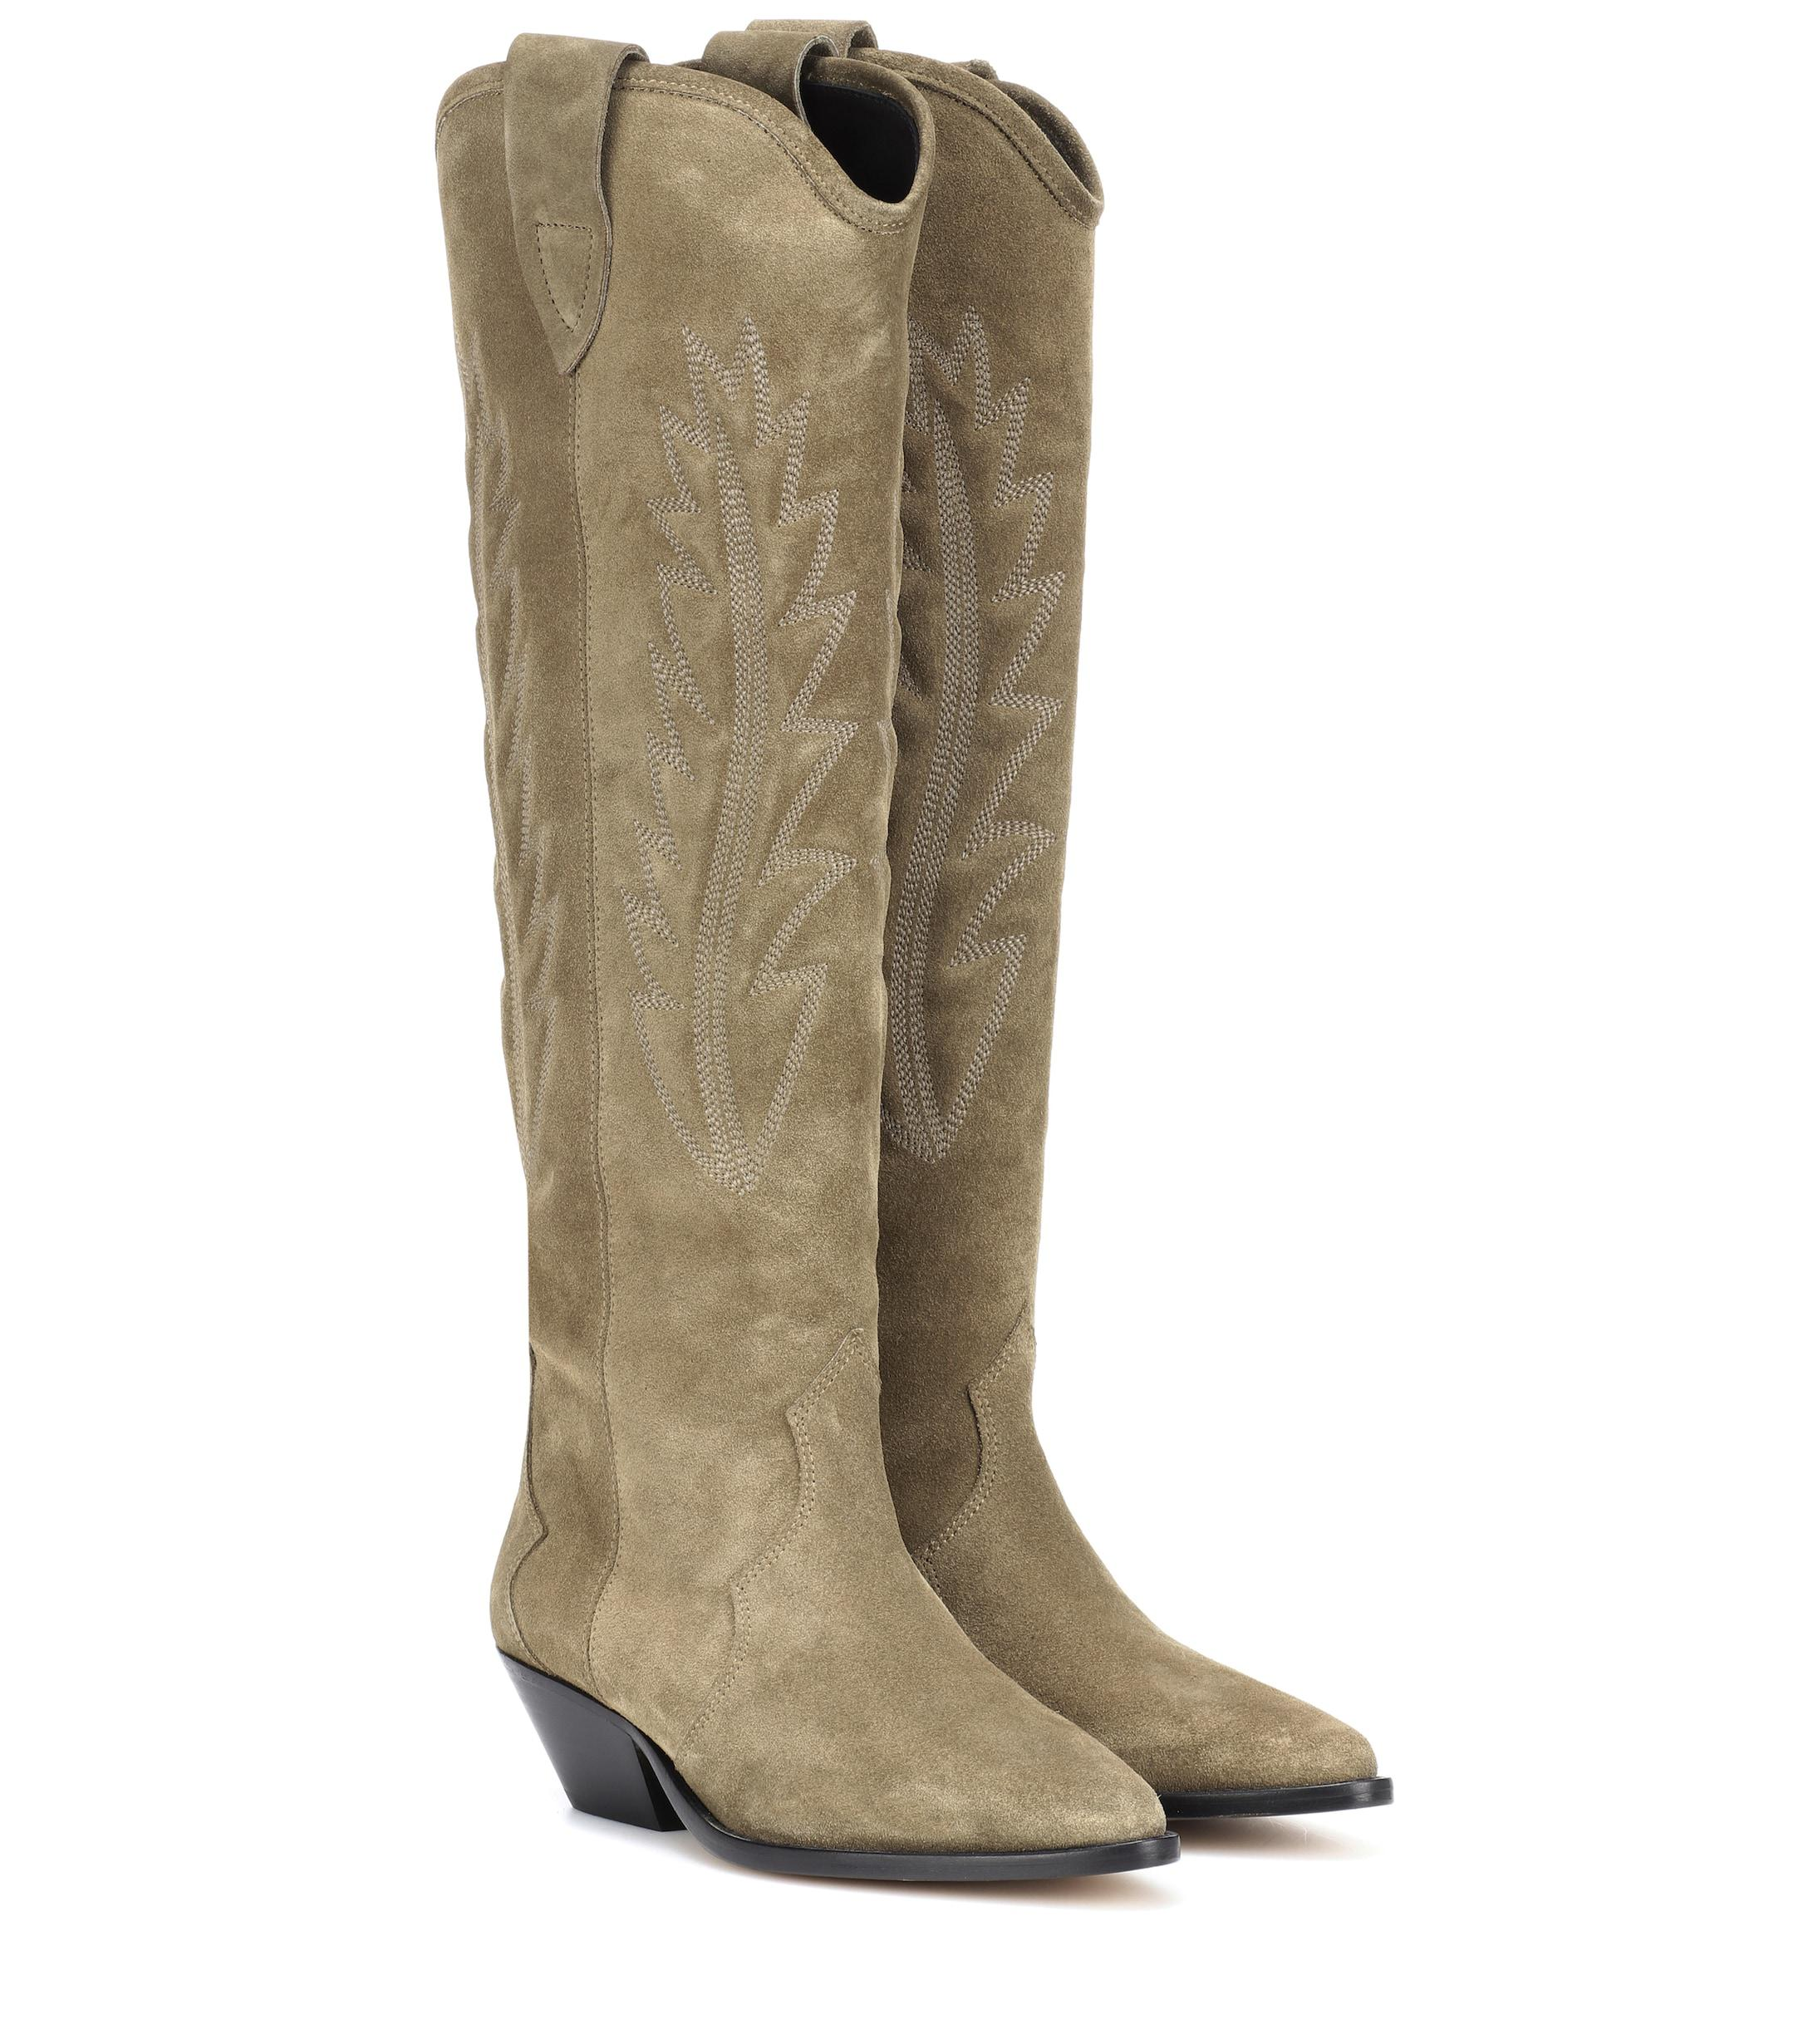 da9a351b7cb Isabel Marant. Women s Denzy Suede Cowboy Boots. £565 From Mytheresa. Free  shipping with Mytheresa on ...